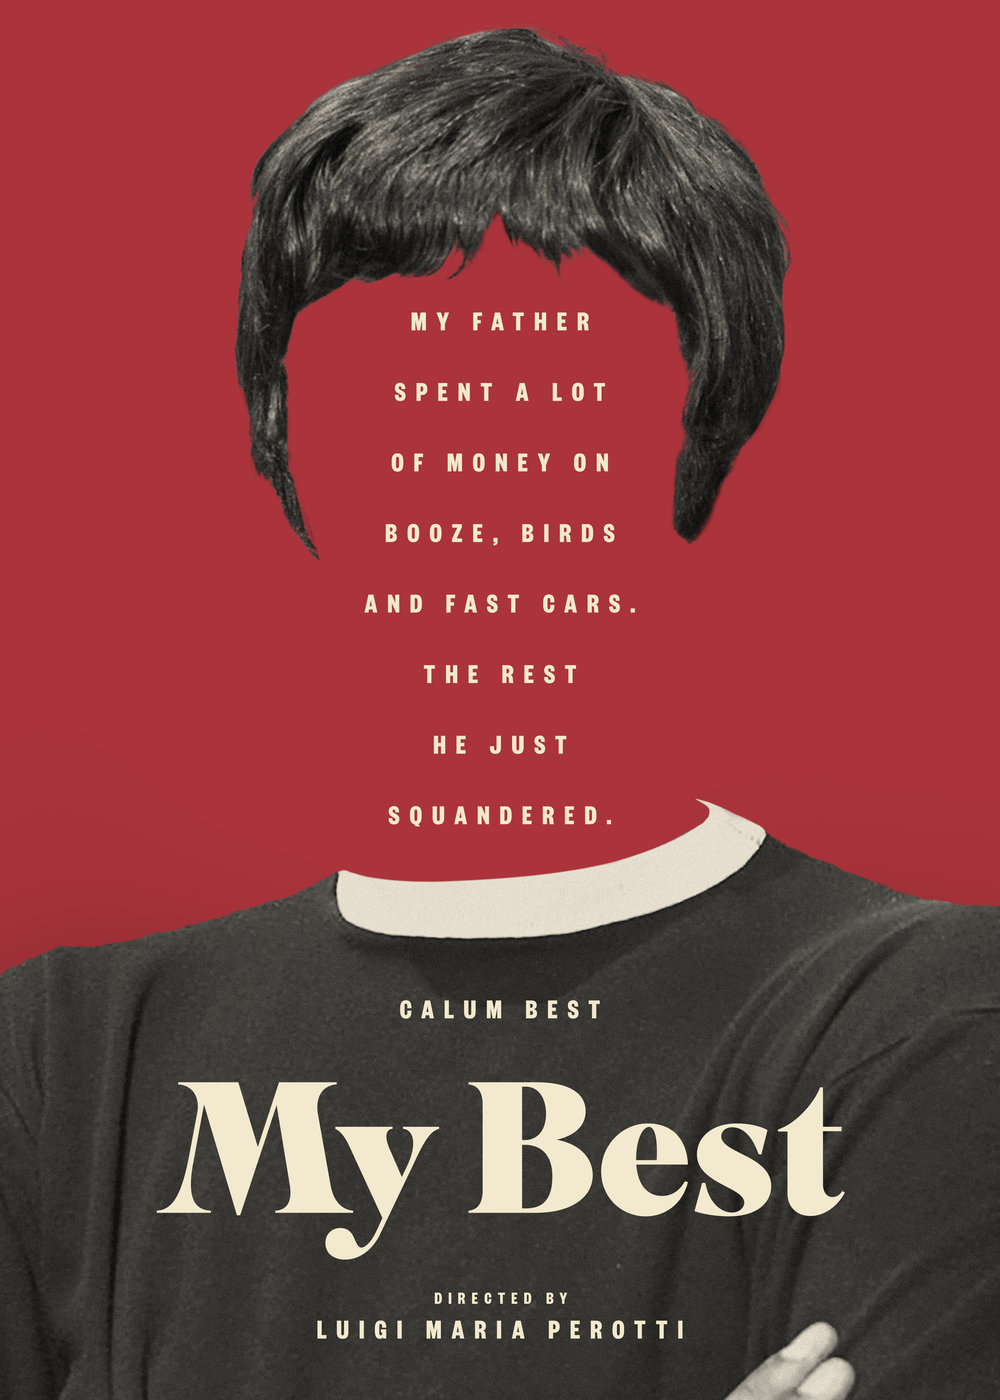 'My Best' is the story of Calum Best's journey to understand his father, the footballer George Best, a constant presence in his life even after death.